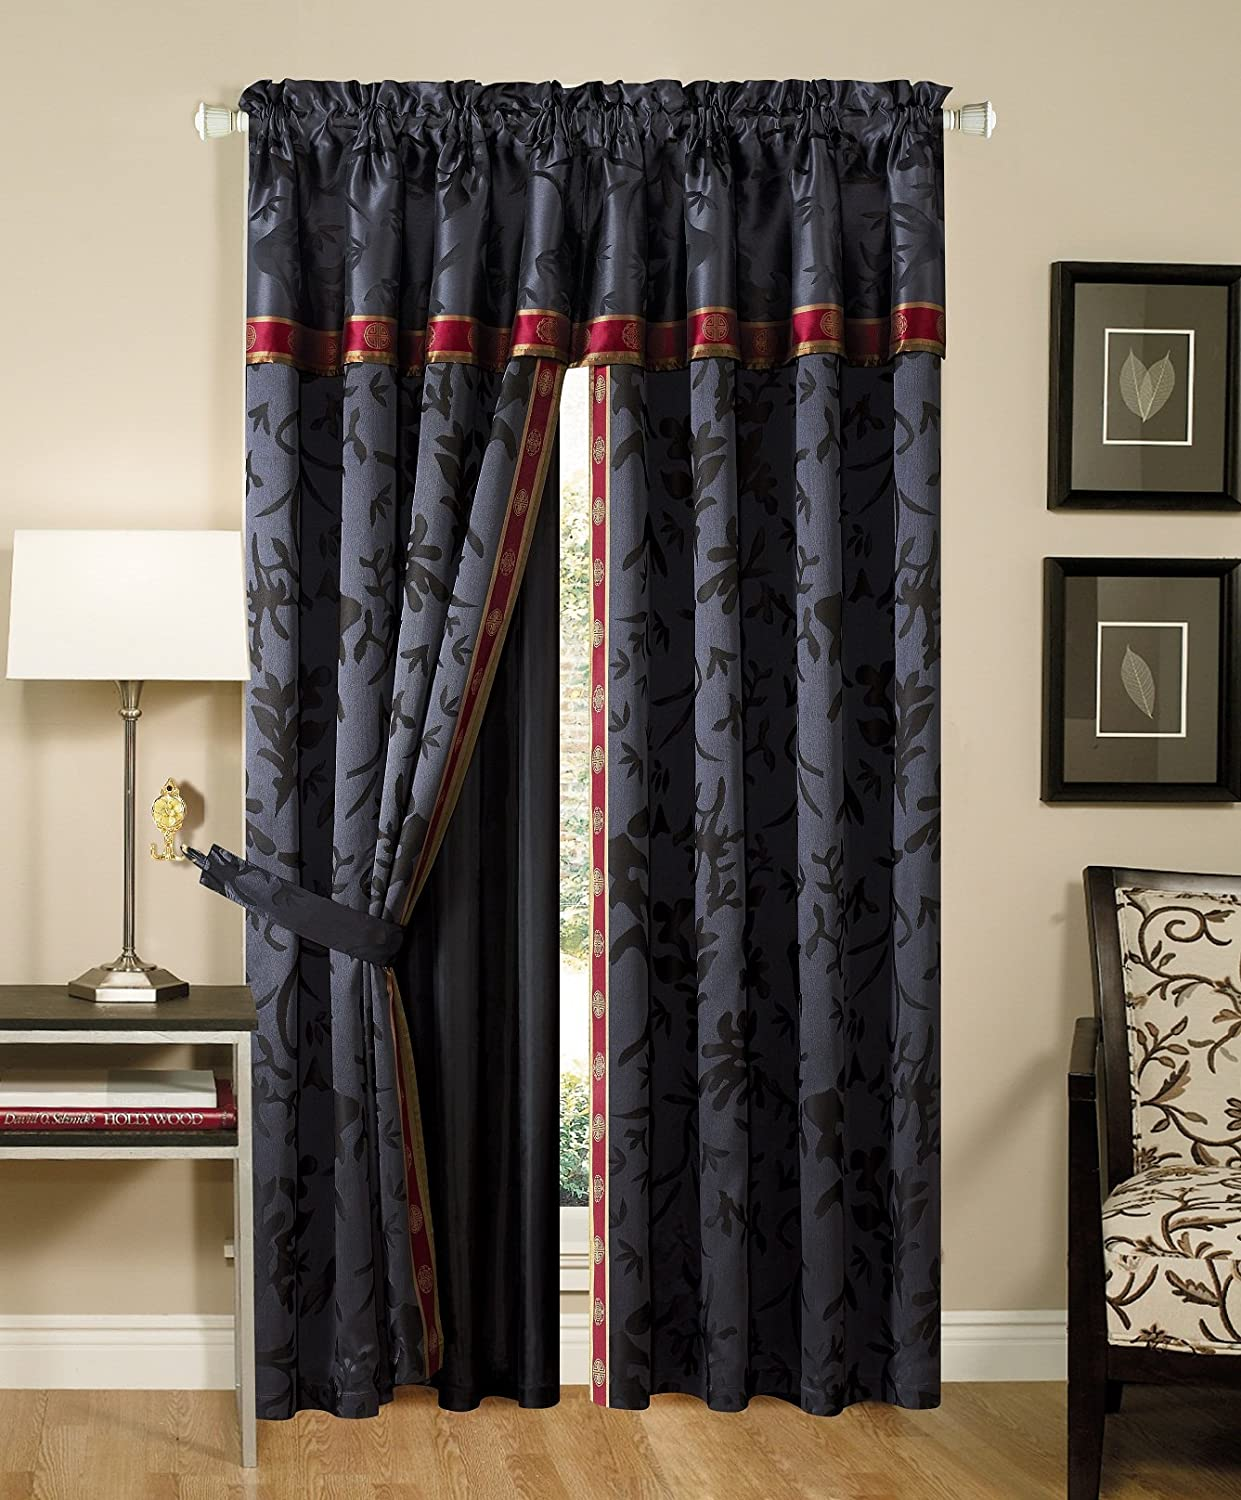 Exceptional Amazon.com: Chezmoi Collection 4 Piece Palace Jacquard Window Curtain/Drape  Set With Sheer Backing, Black/Gold/Red: Home U0026 Kitchen